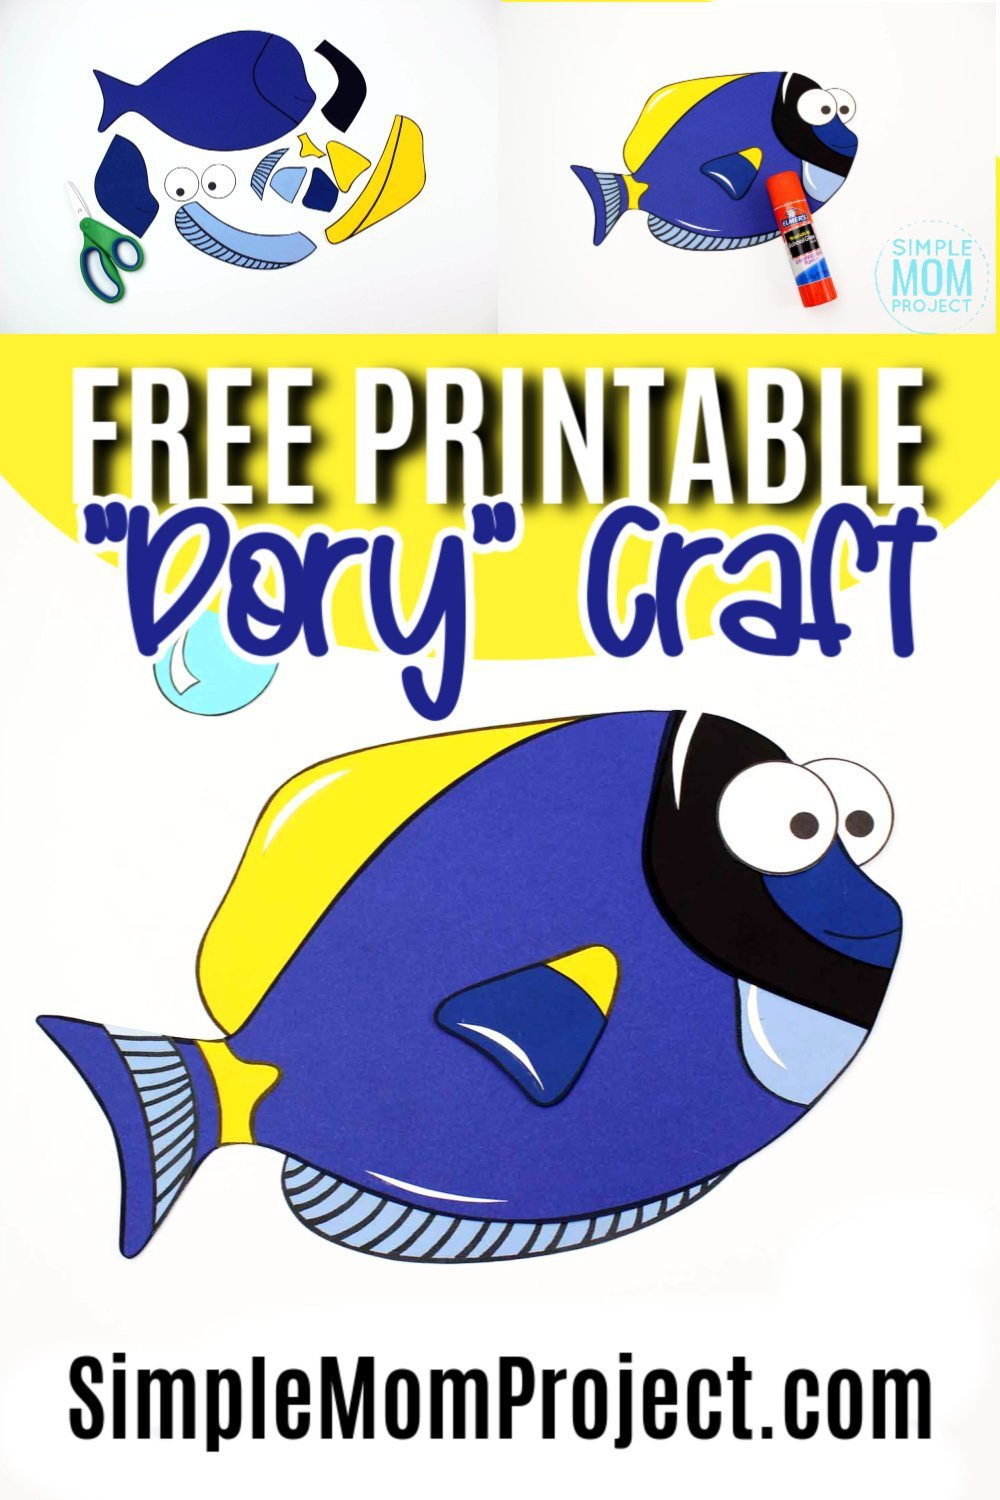 Do you love the movie Finding Nemo? What about Finding Dory? Then you are going to love this paper blue tang fish art project! With a free printable blue tang template, your ocean themed, aquarium craft can begin! She is perfect for kids of all ages including preschoolers and toddlers #bluetang #bluetangcrafts #fishcrafts #dorycrafts #findingnemocrafts #findingdorycrafts #oceananimals #oceananimalcrafts